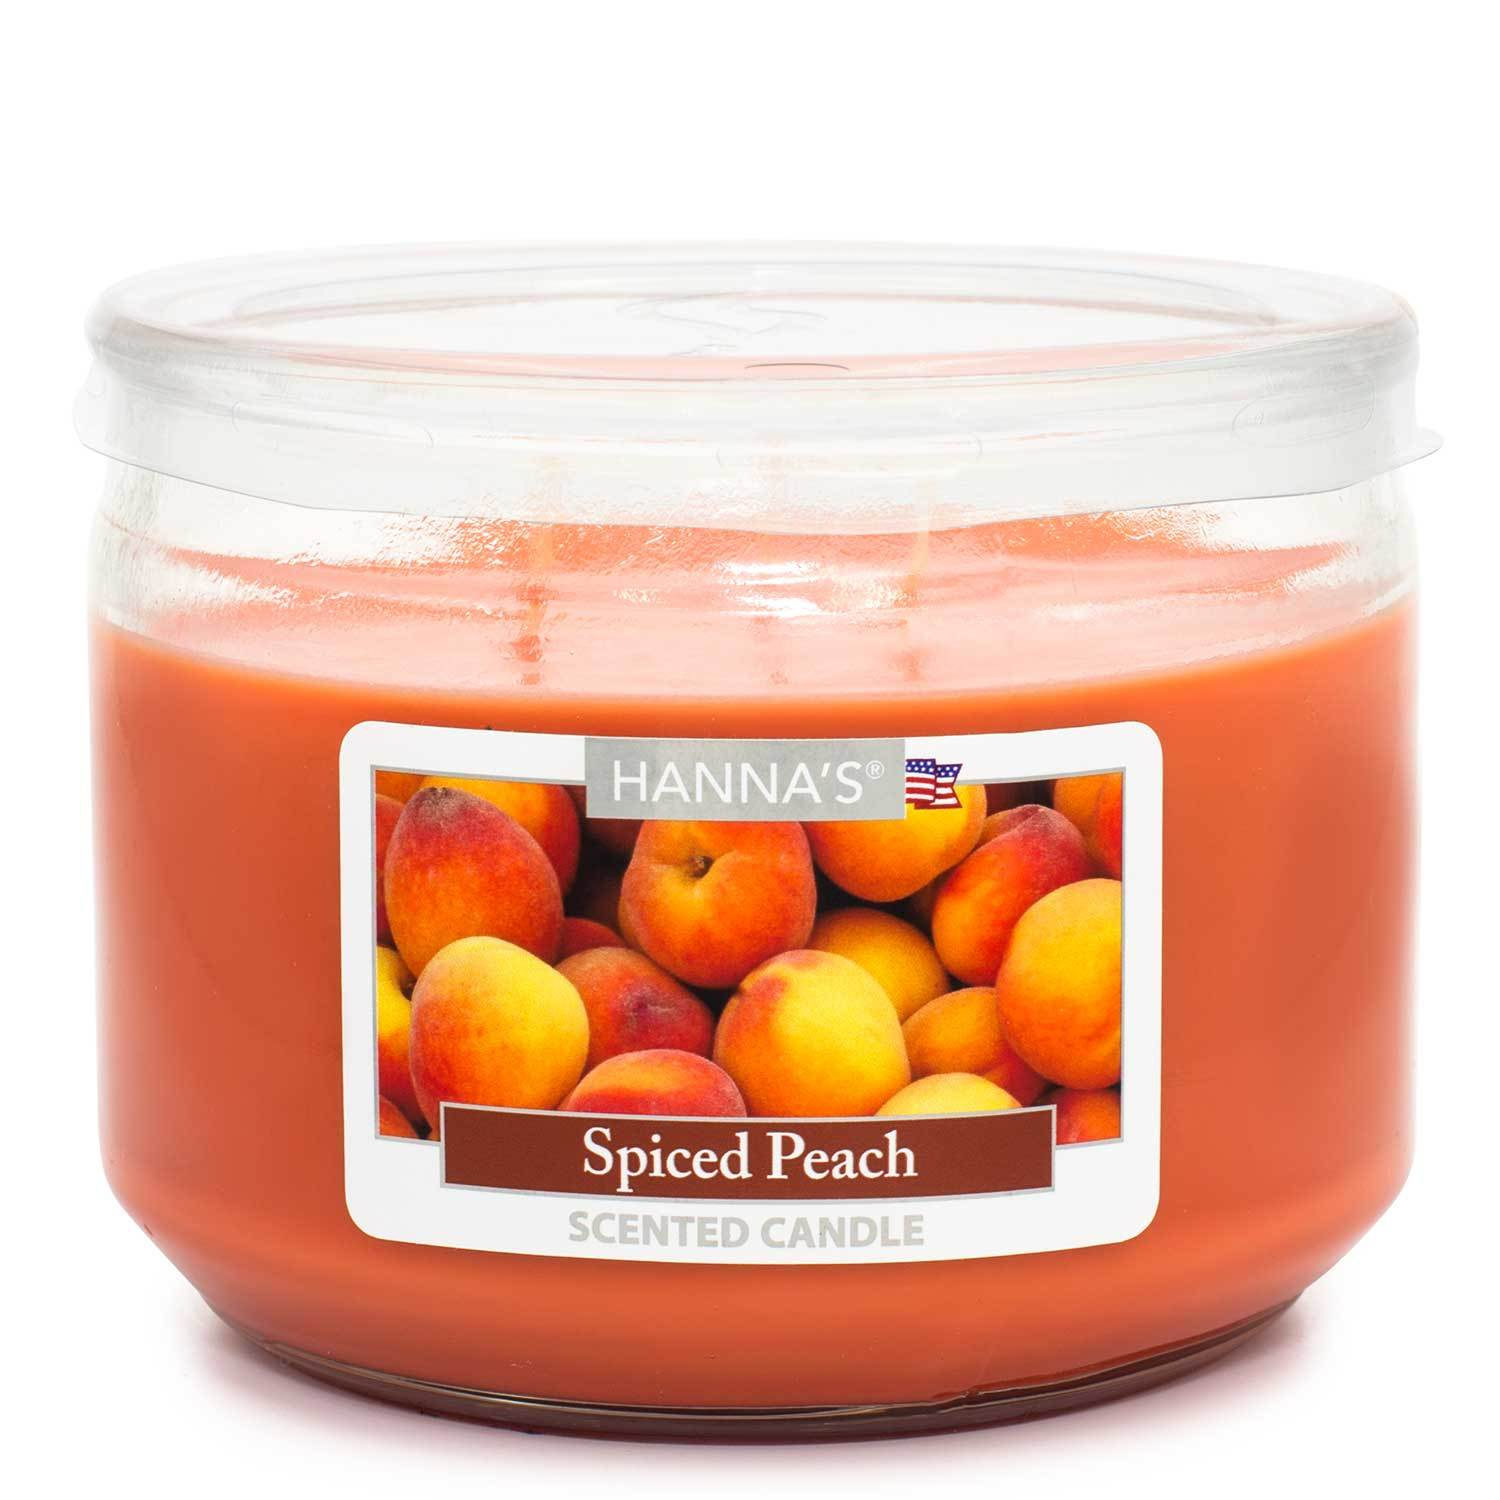 Spiced Peach Scented 3 wick Candle Candles Candlemart.com $ 7.99